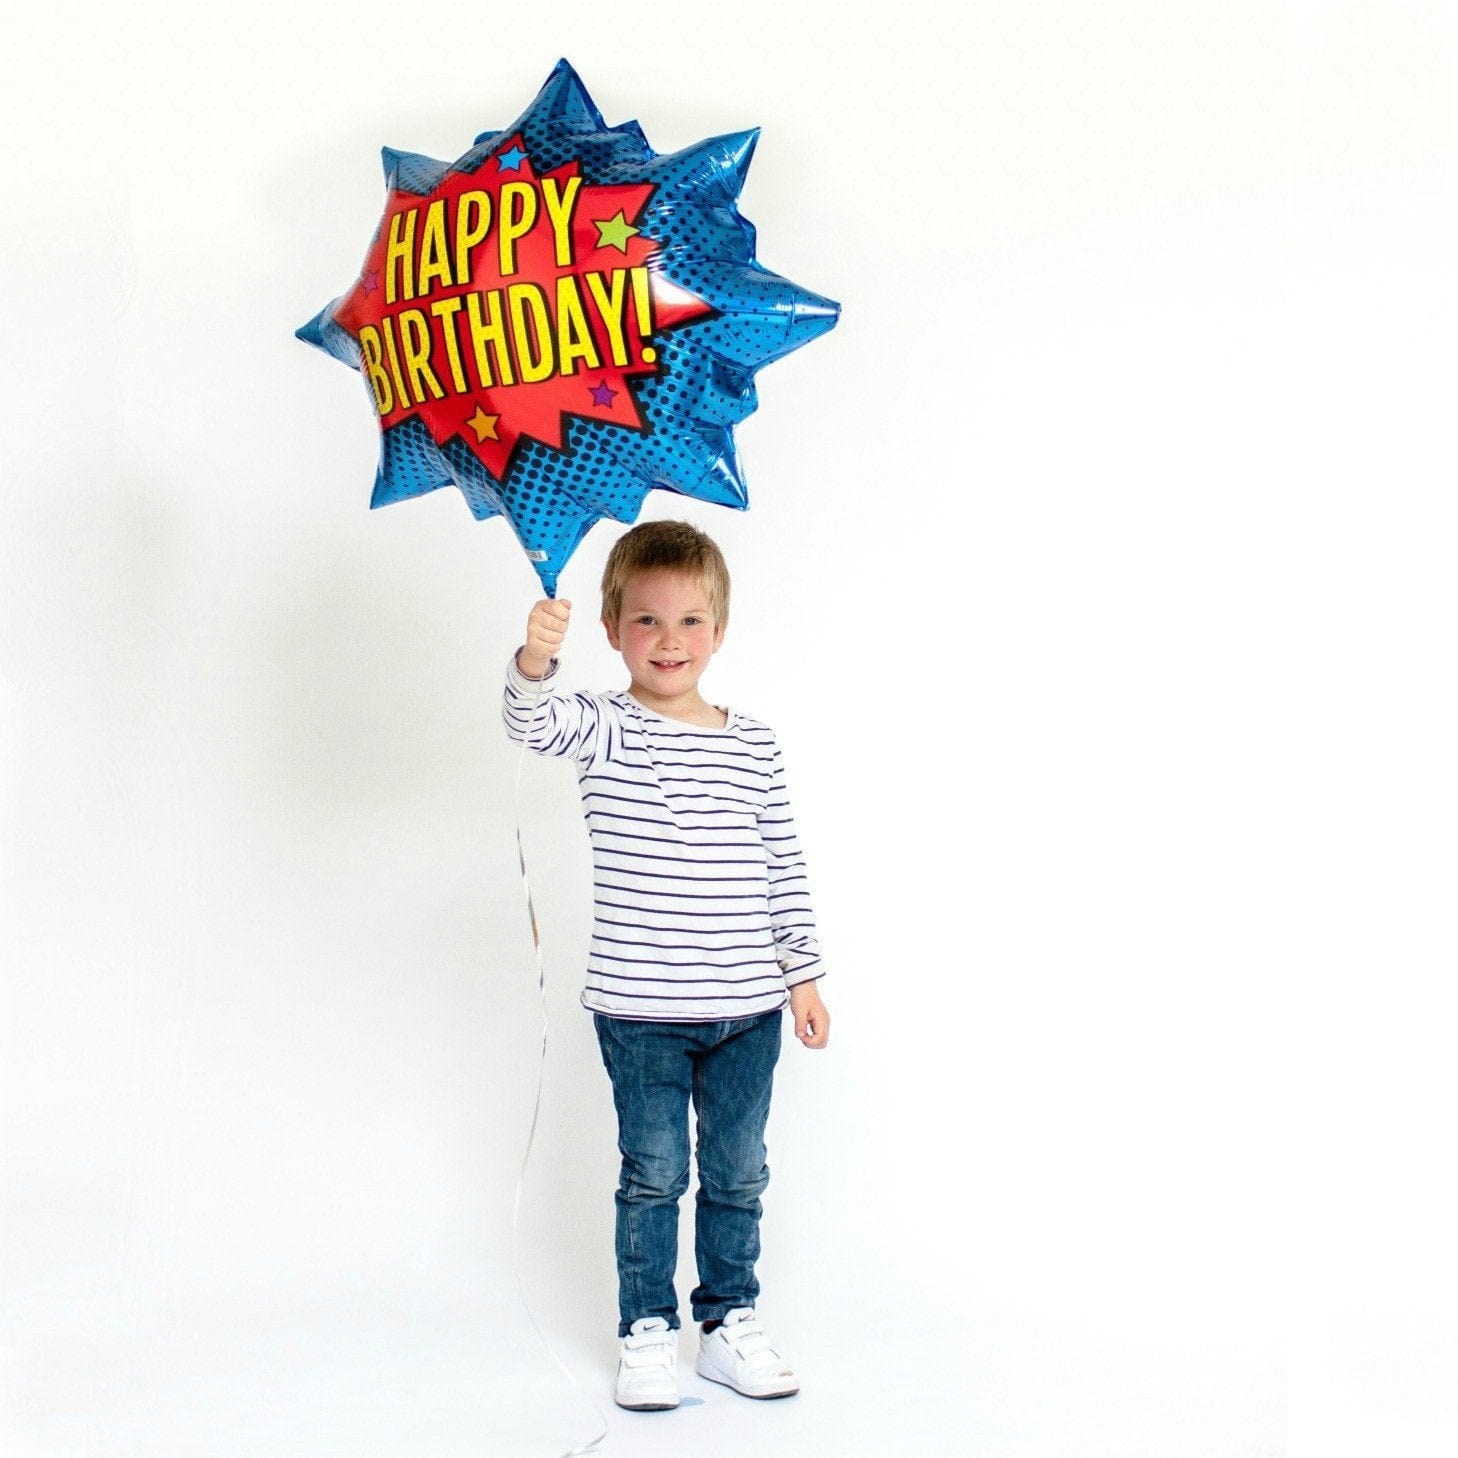 Superhero Party Balloon | Foil Balloon Shapes | Online Party Balloons